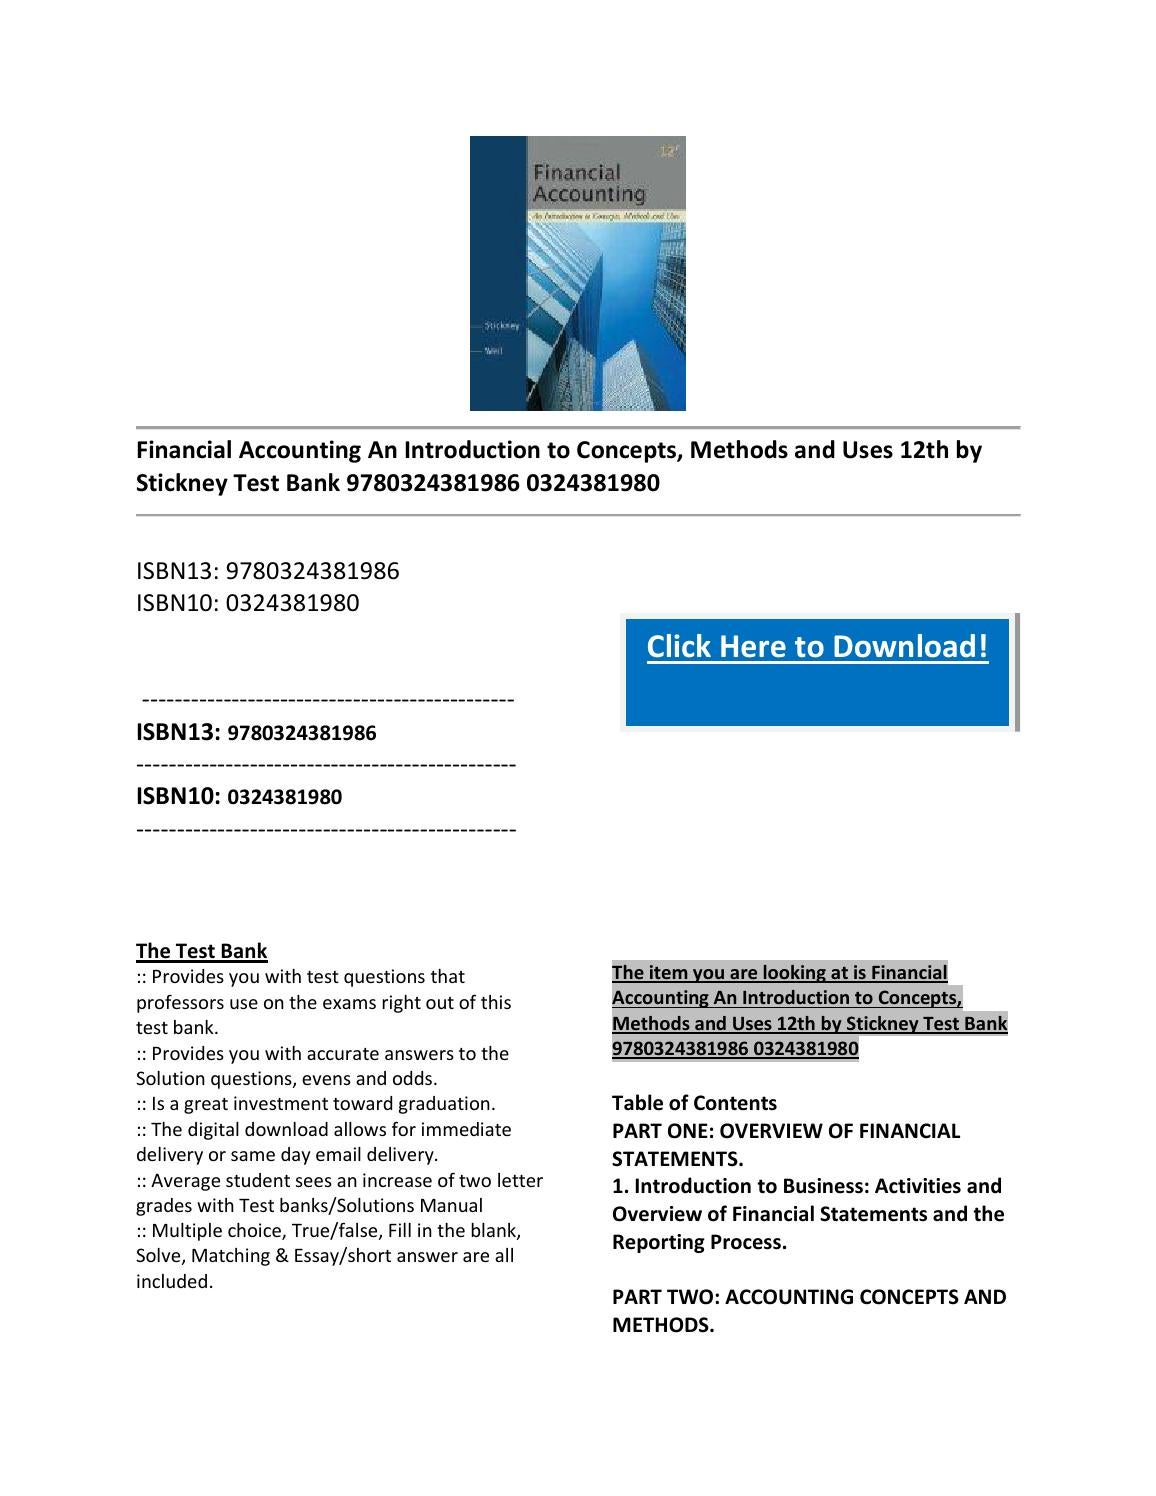 Financial accounting an introduction to concepts, methods and uses 12th by  stickney test bank 978032 by Edward876523 - issuu